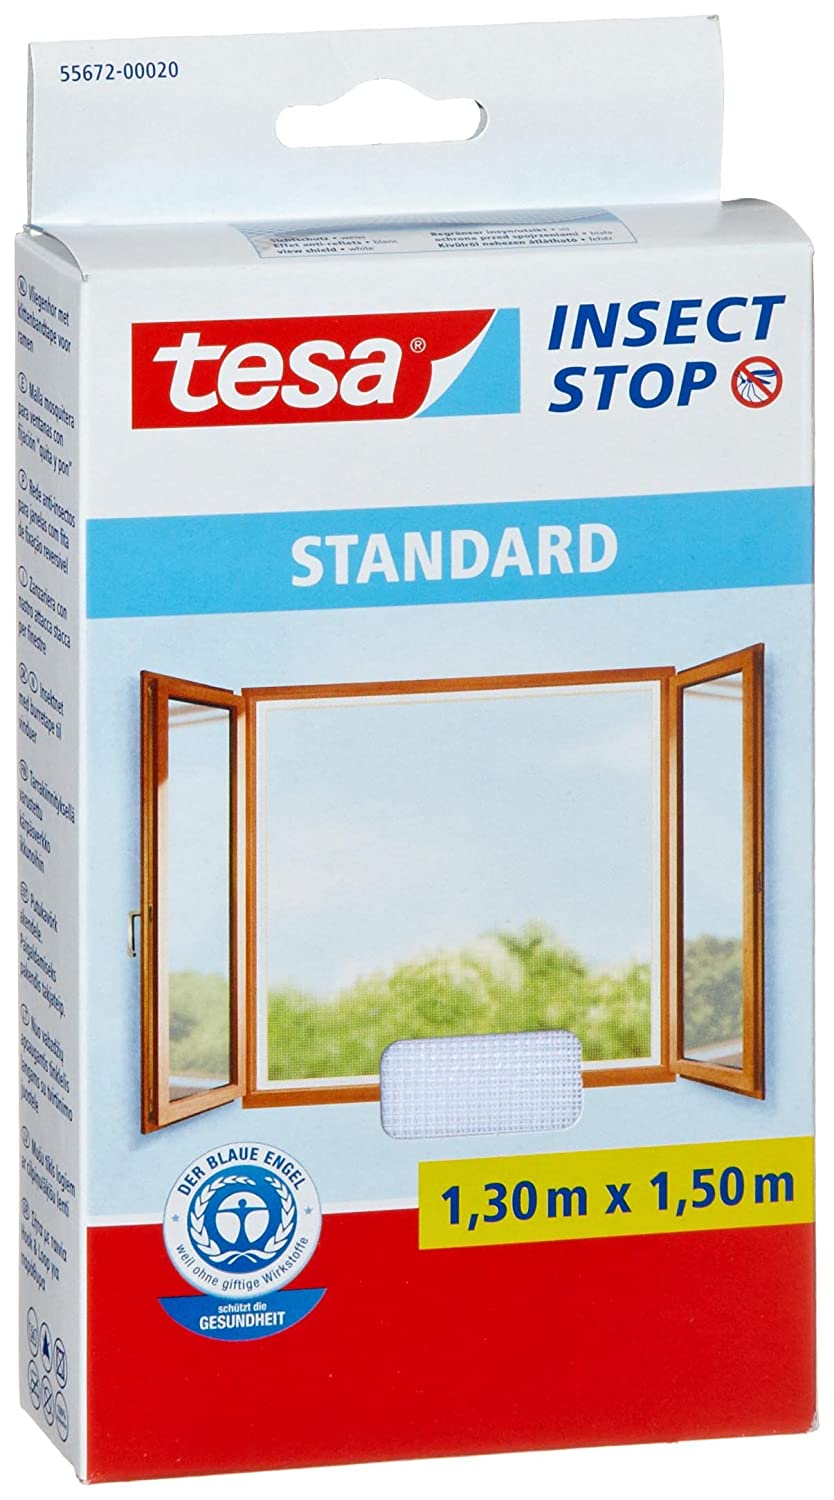 tesa 55672-00020-03 Insect Stop Hook and Loop Standard Easy To Use, Washable Insect Screen For Windows, 1.3 x 1.5 m - White